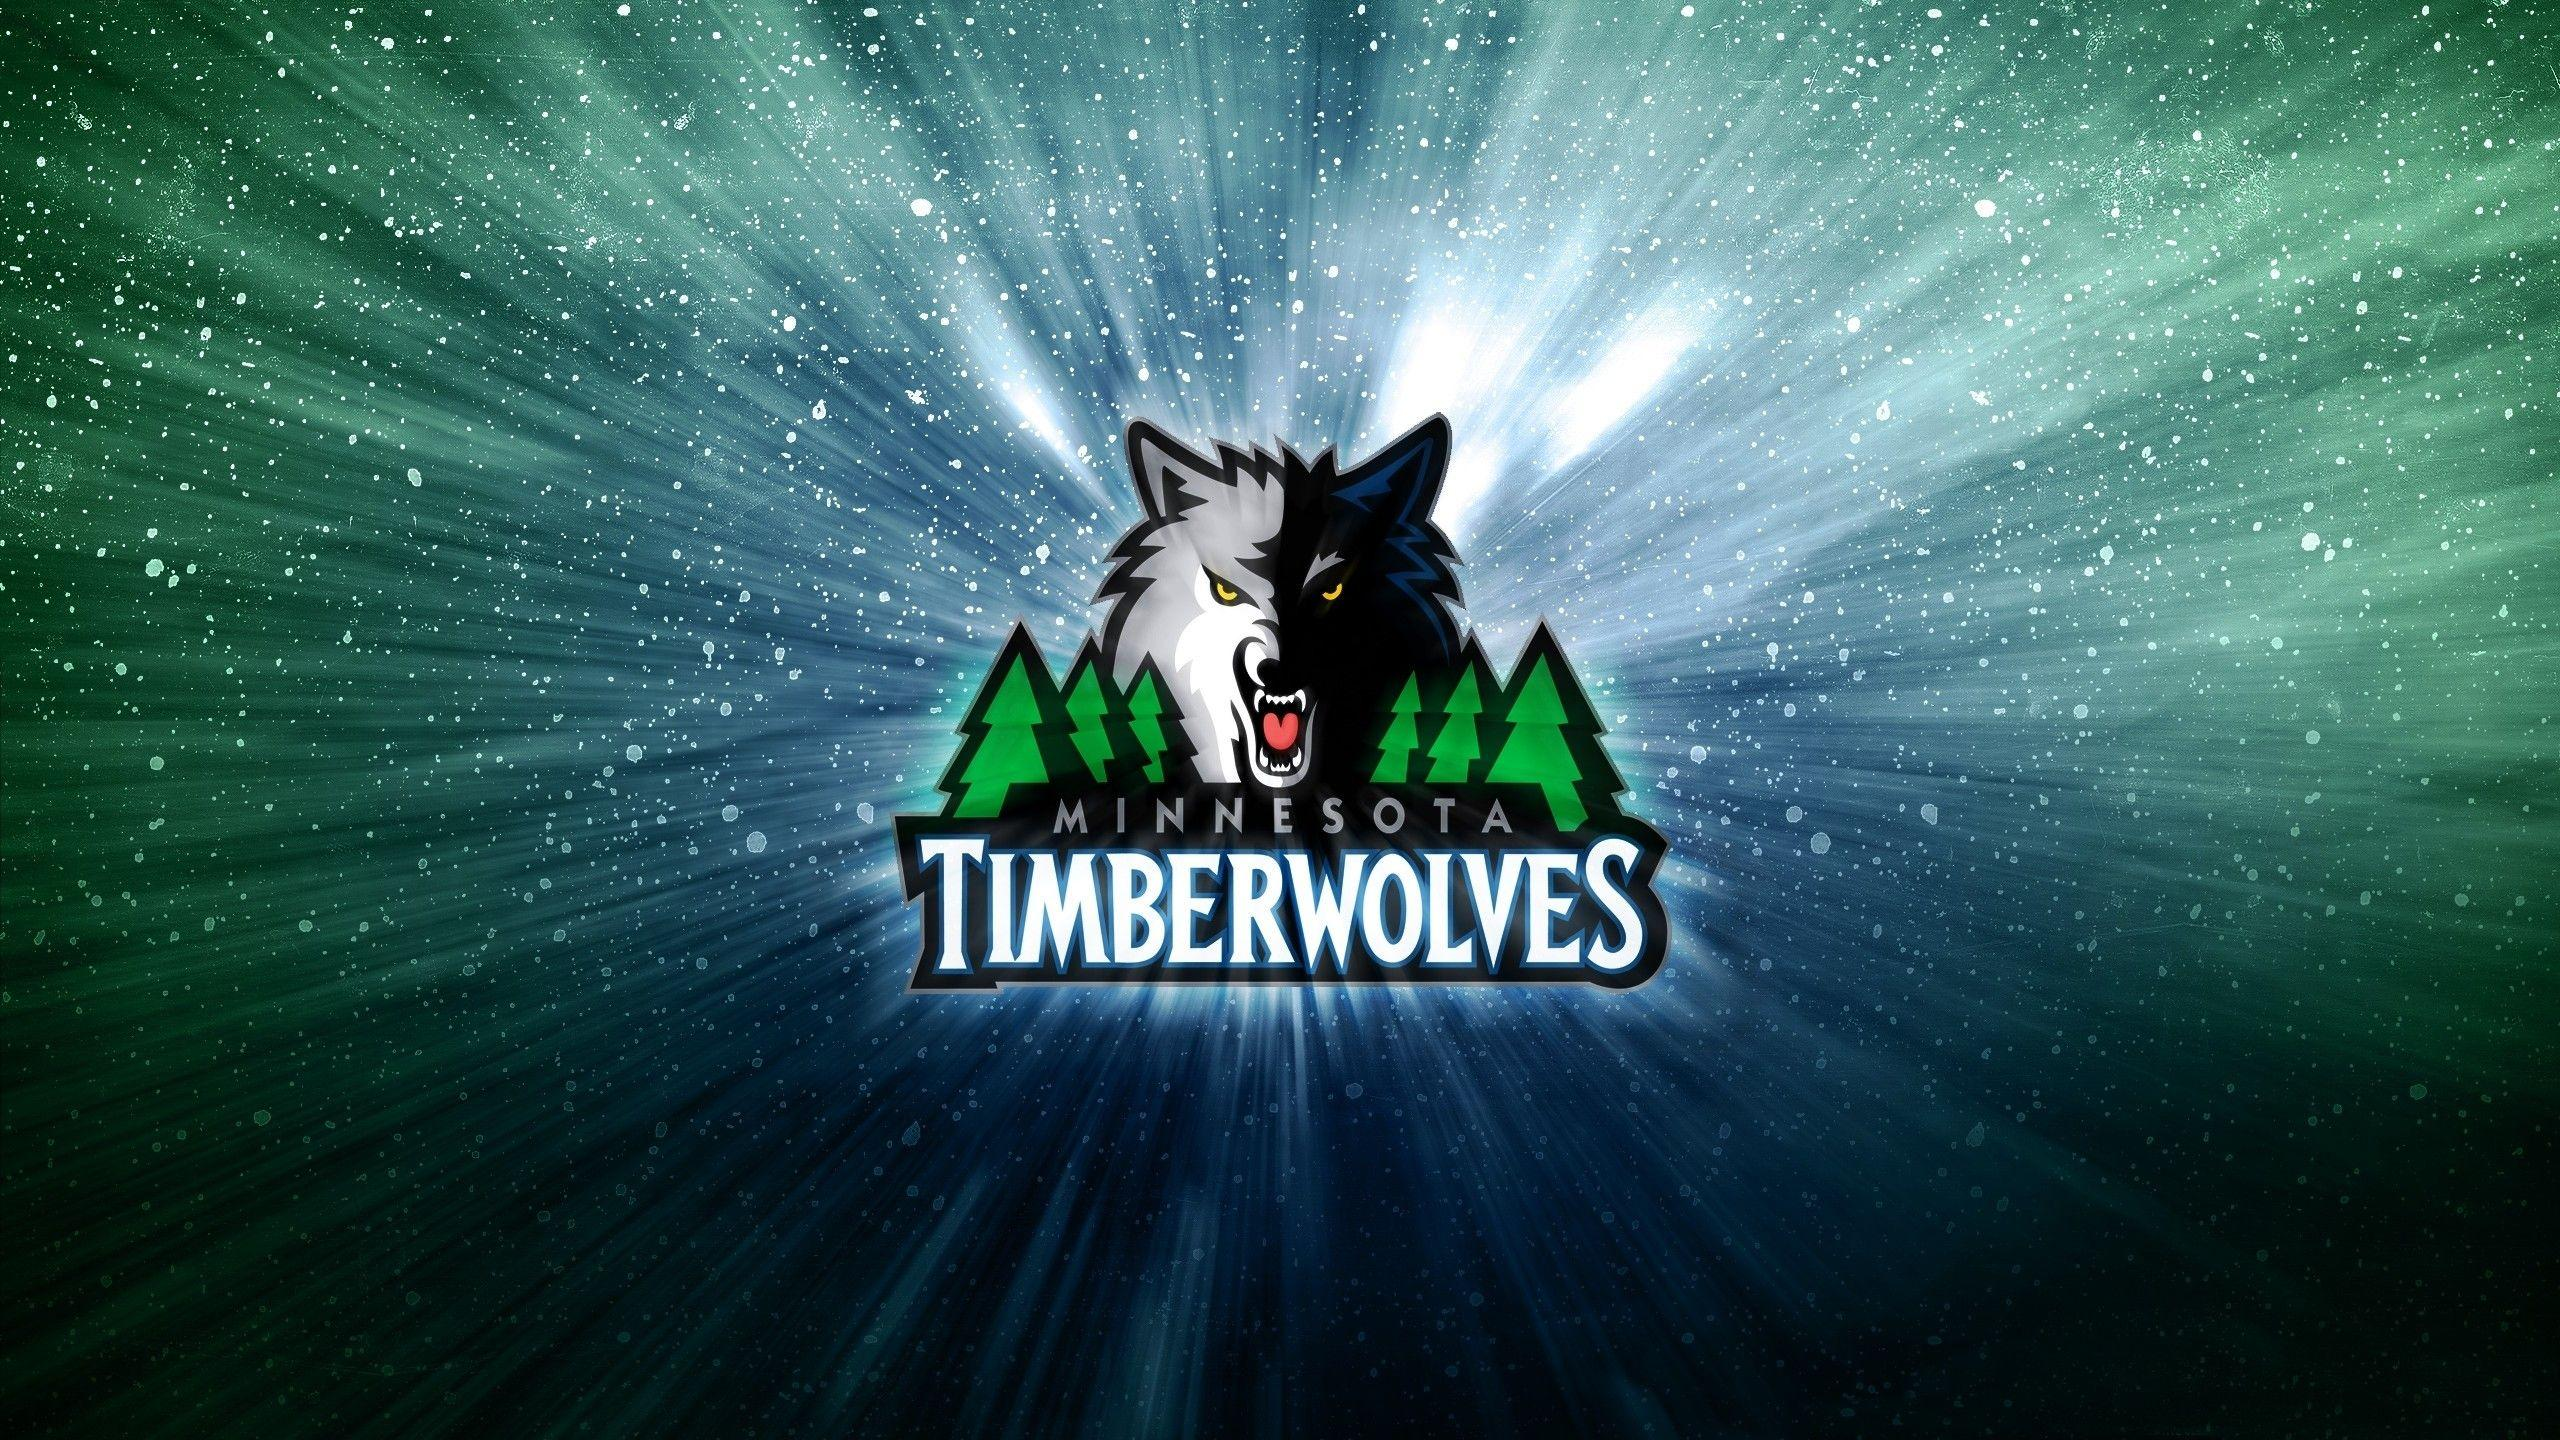 Minnesota Timberwolves Wallpapers